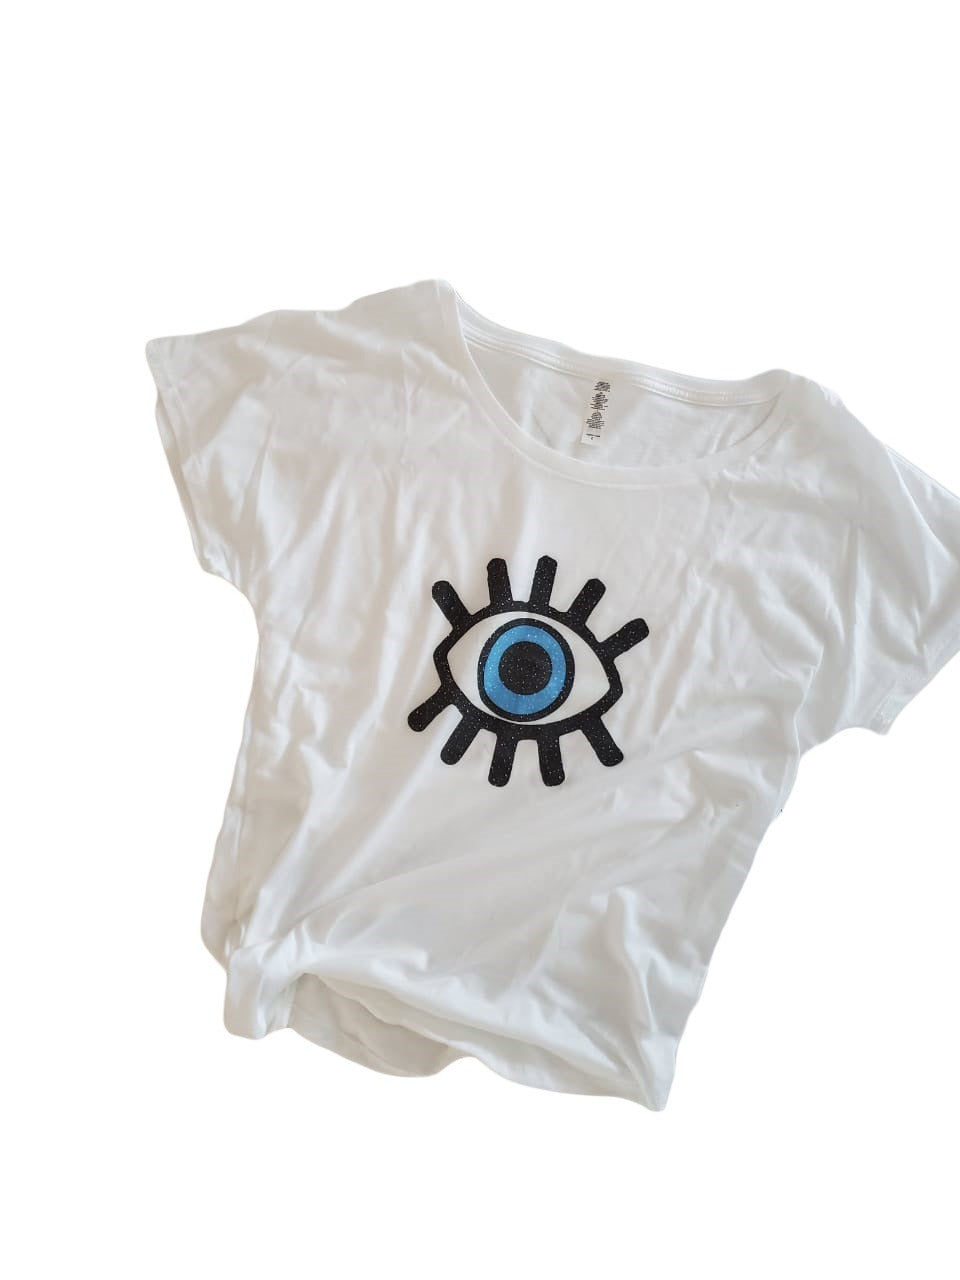 Happy Eye White Tee